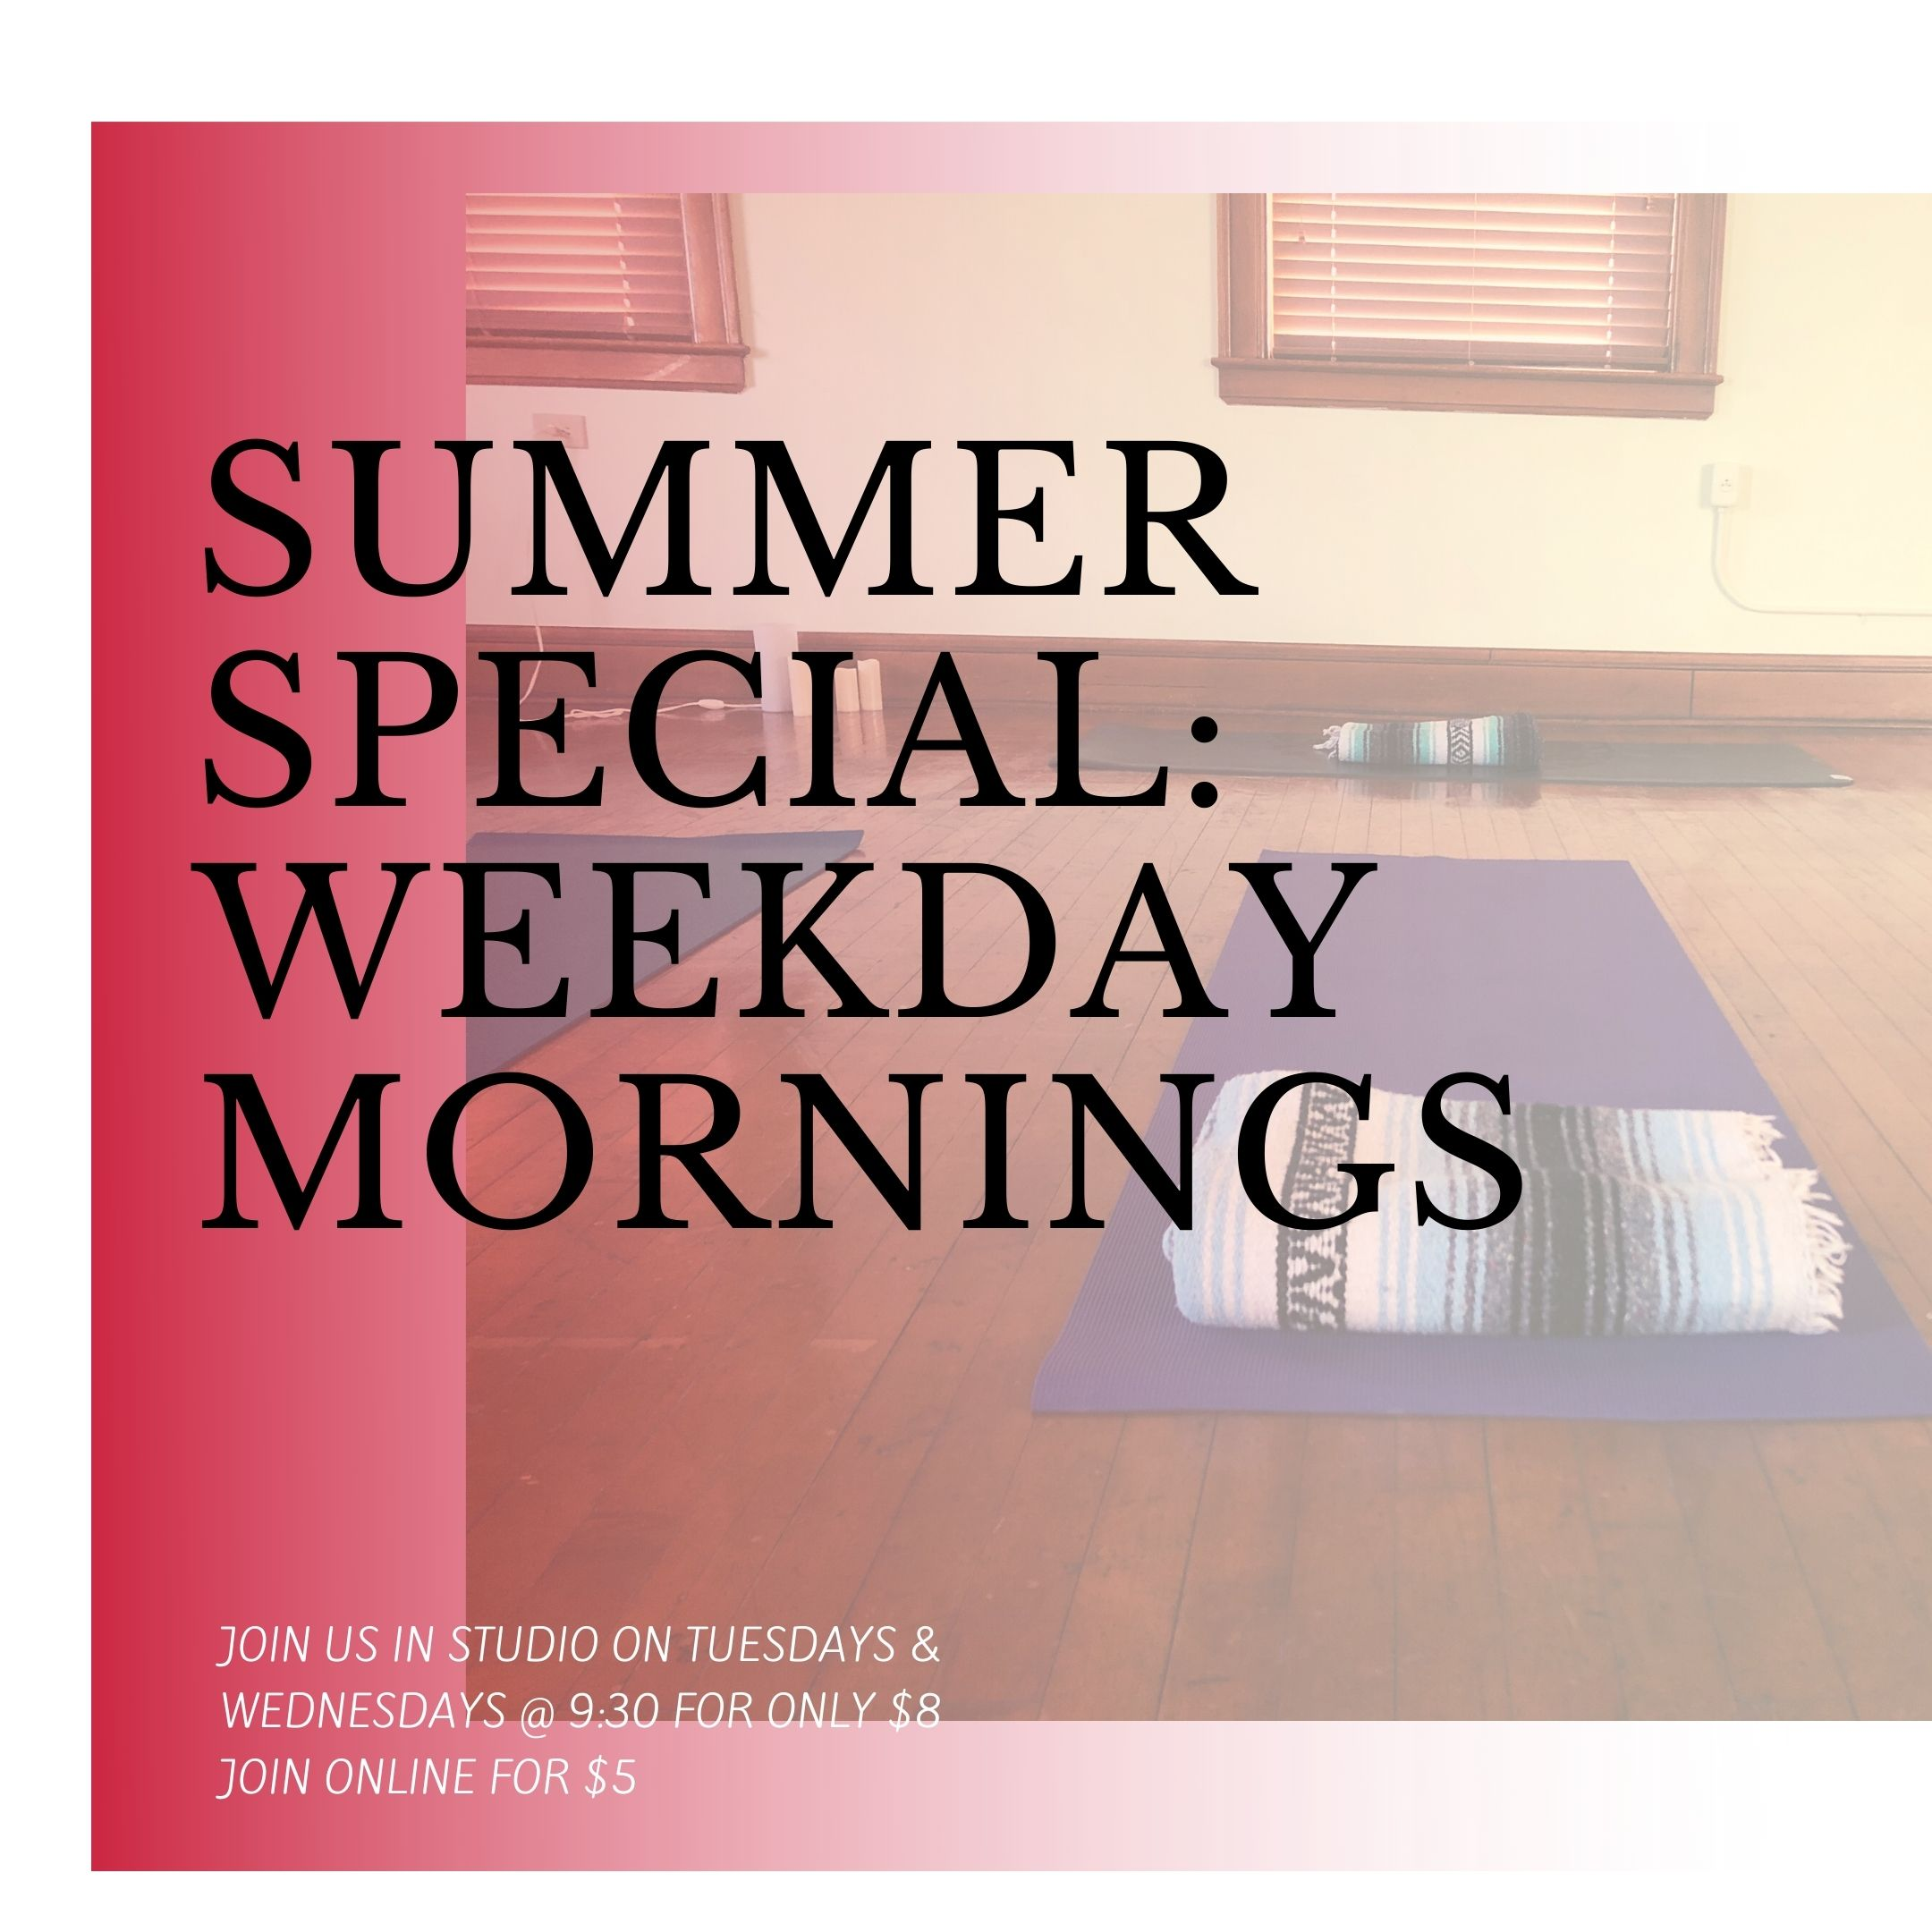 End of Summer Special – Try our weekday morning classes for only $8 in studio!